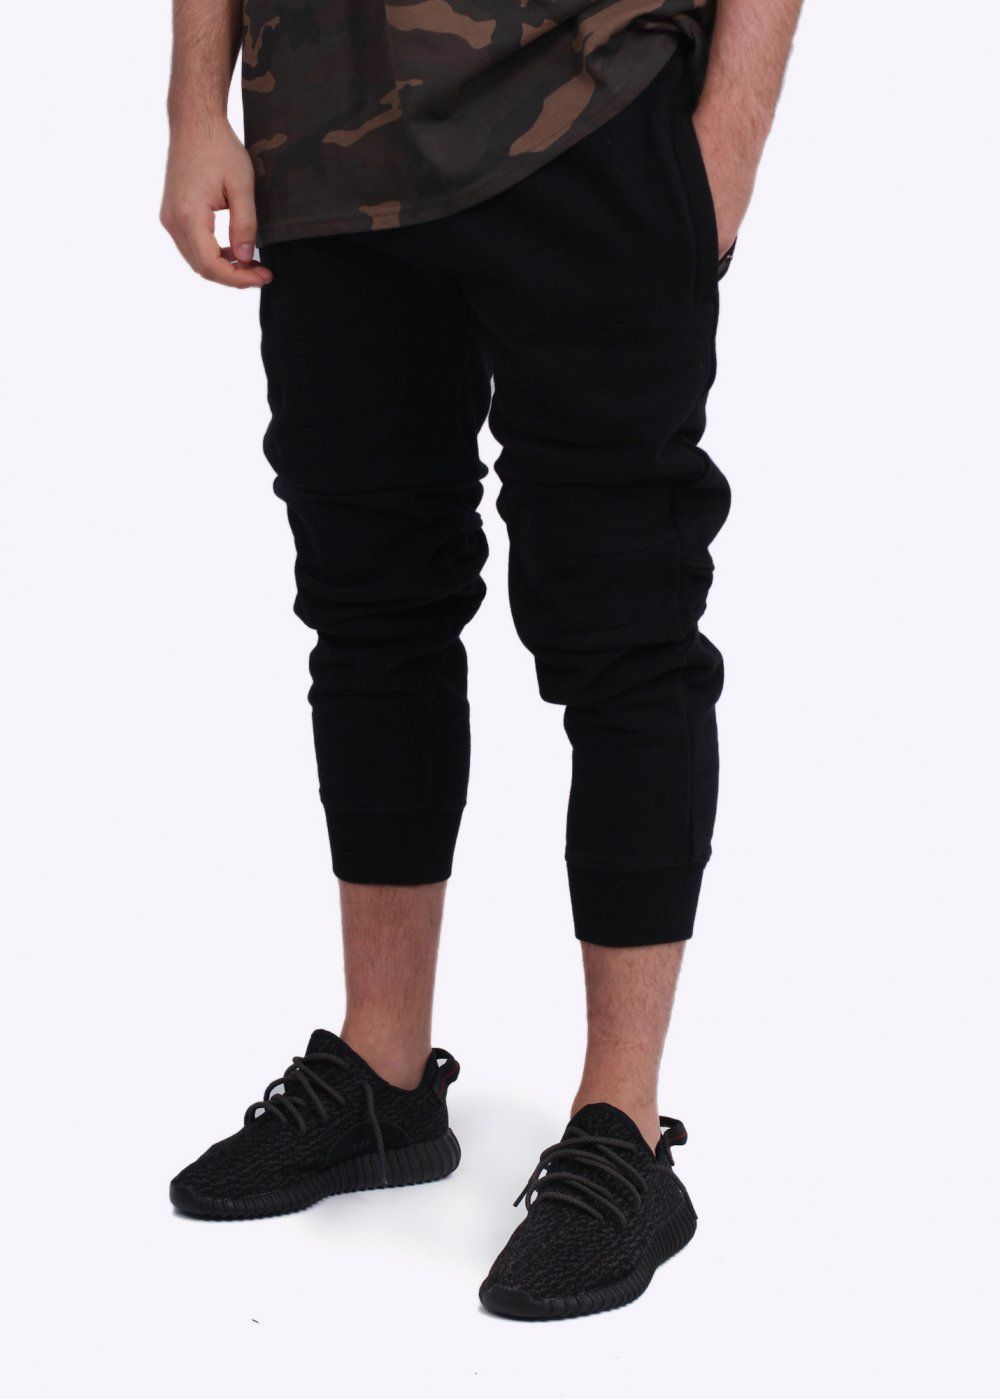 ea7c3c682589 Adidas YEEZY SEASON 1 SFT Sweat Pants - Caviar